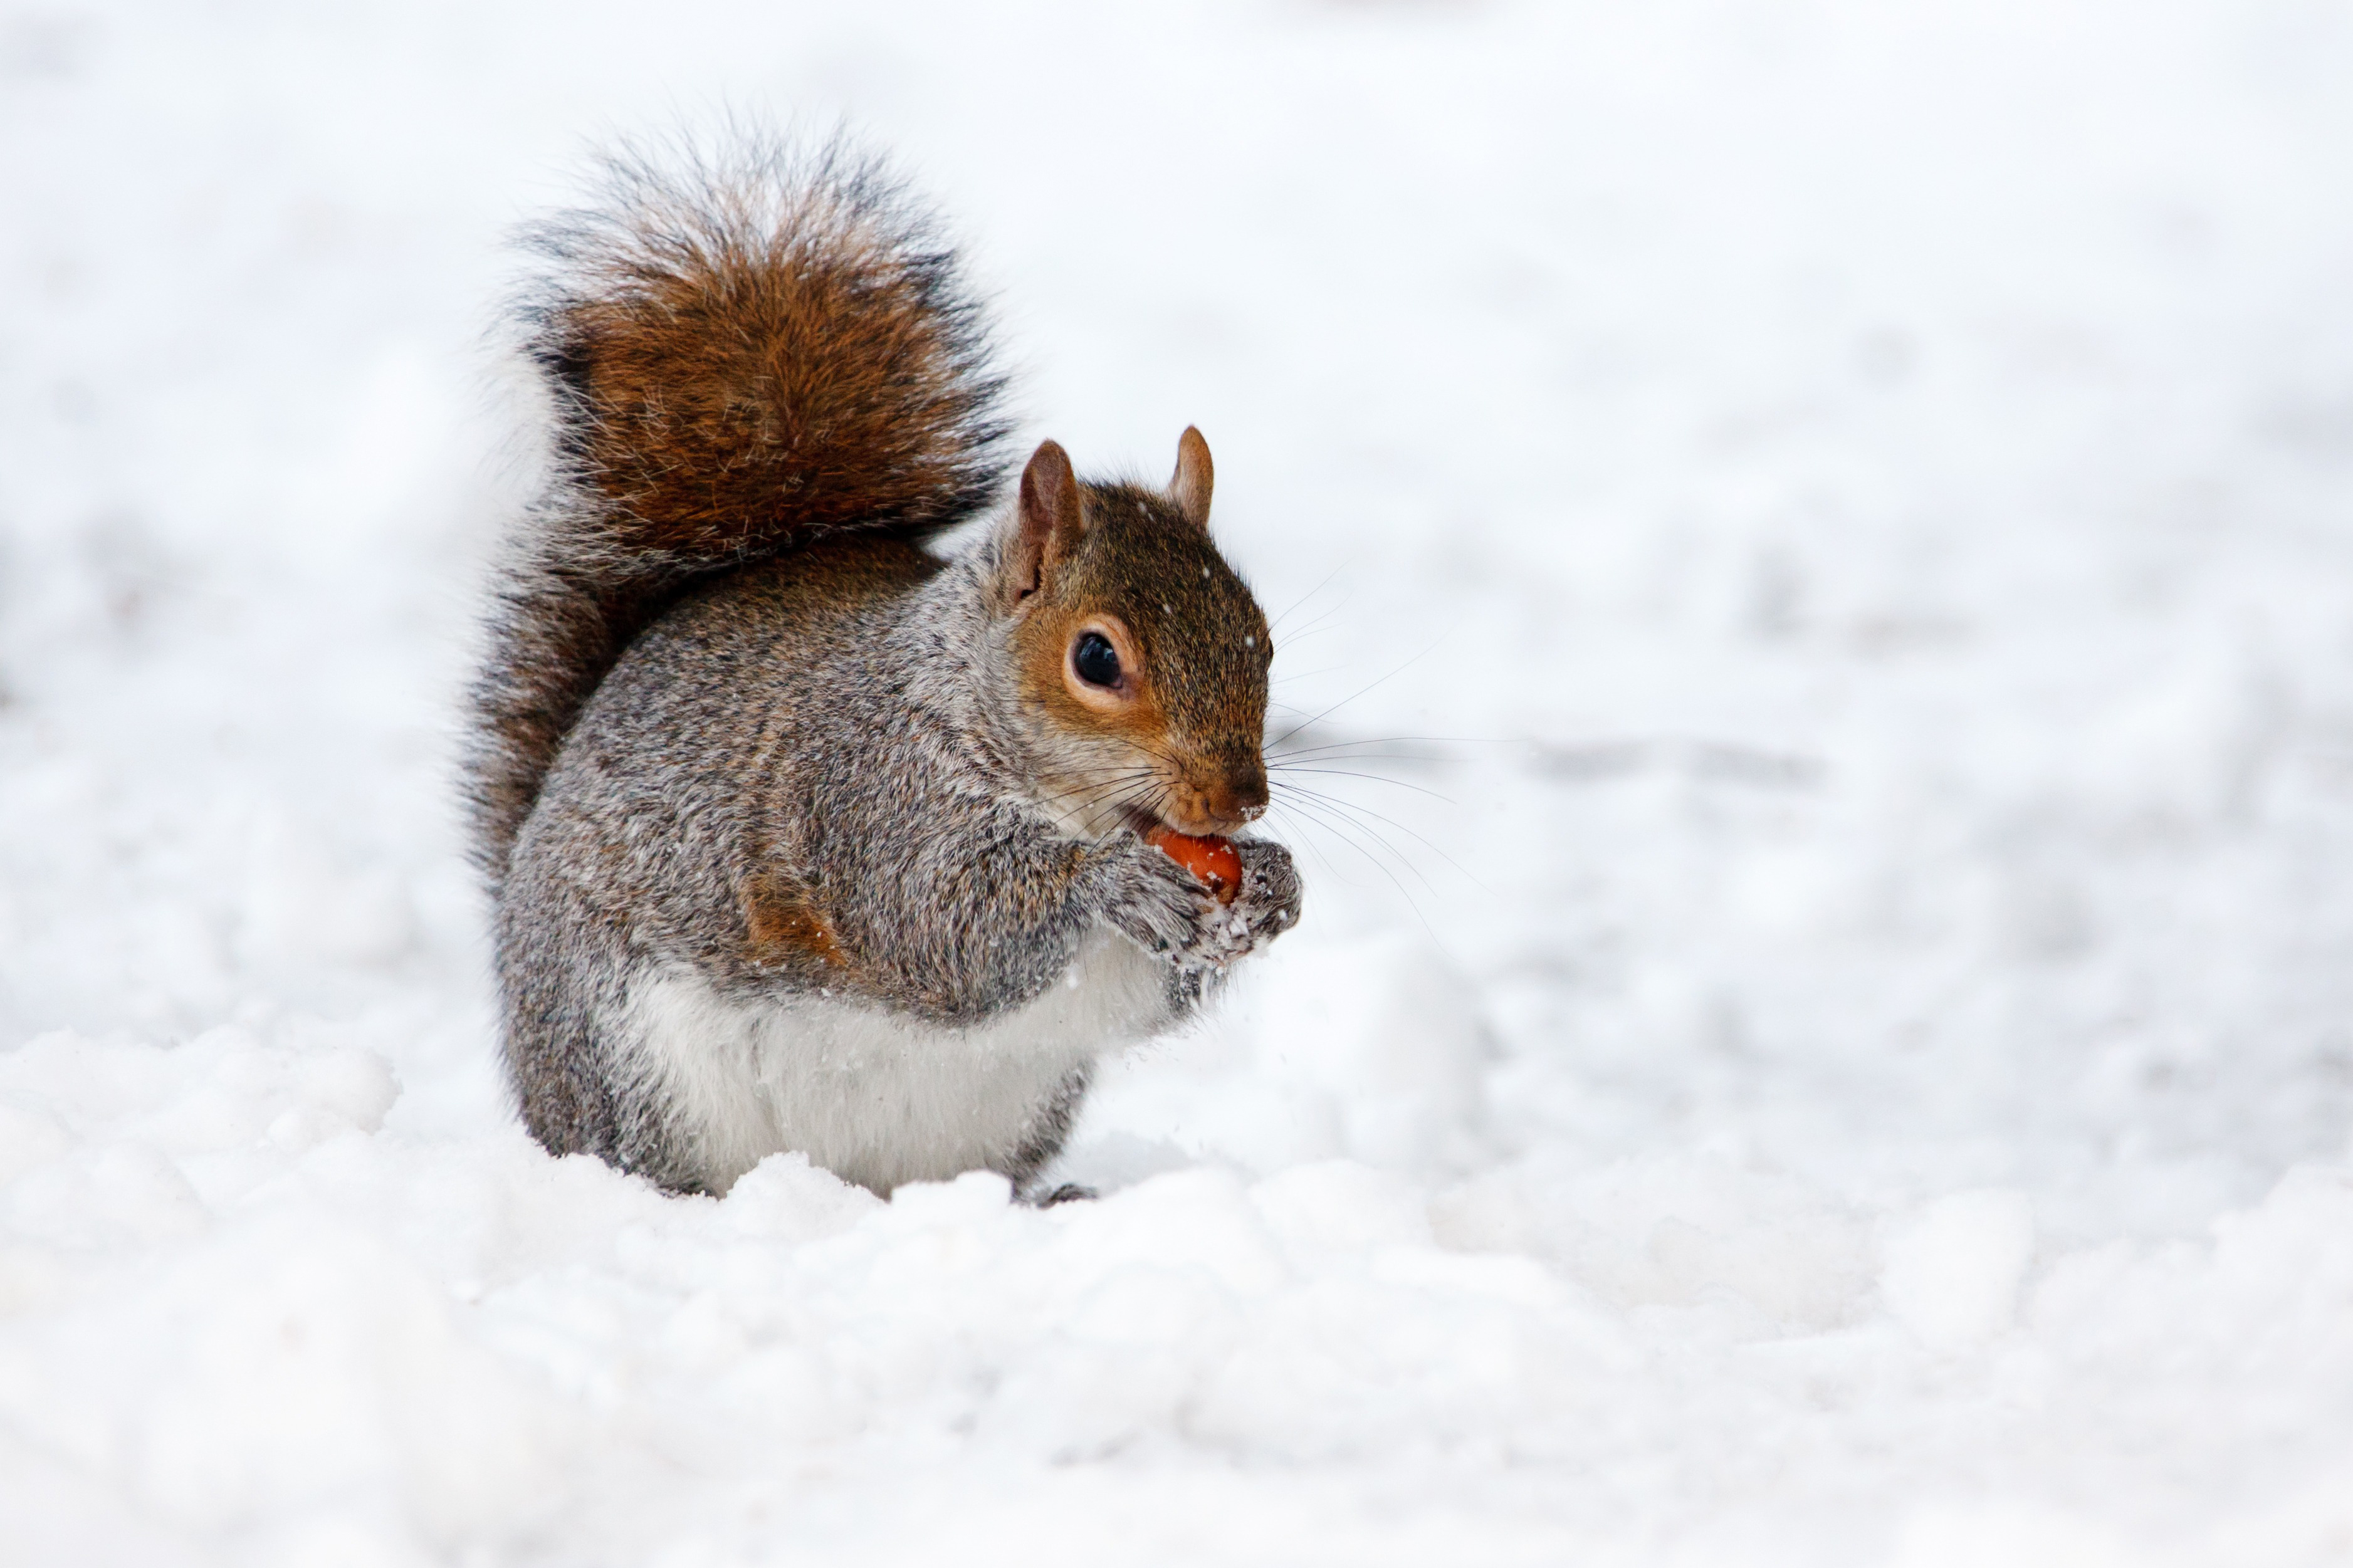 Squirrel,animal,small,cold,eat